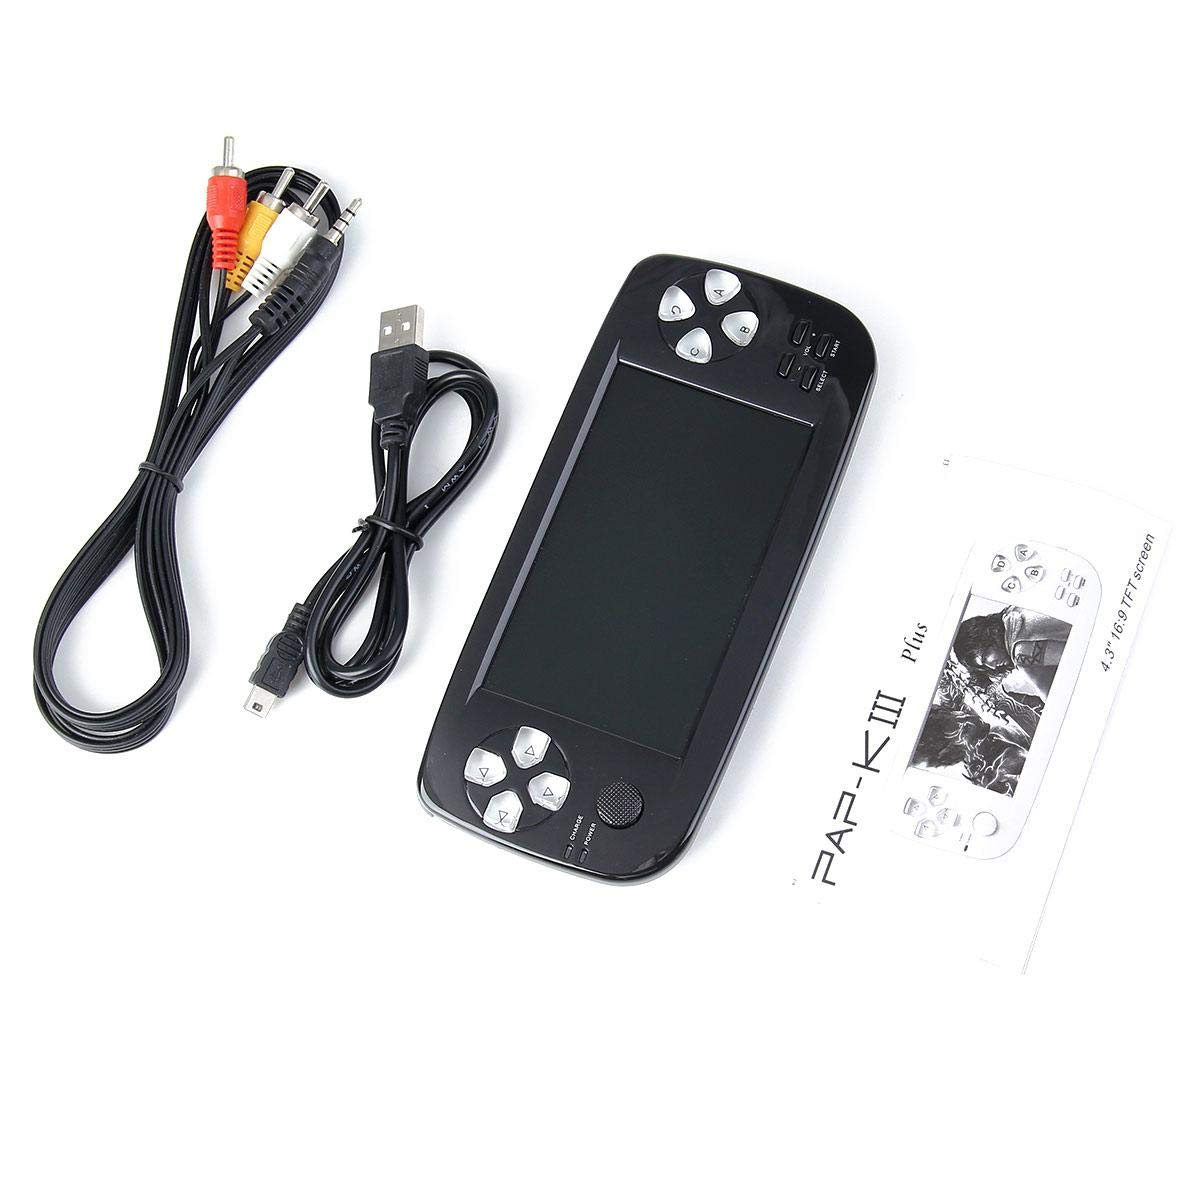 Handheld Game Console, Classic Game Case, Pocket Game Console 3000 Games - Support for Downloading Multi Format Games for Classic Game Fans by Womdee (Image #5)